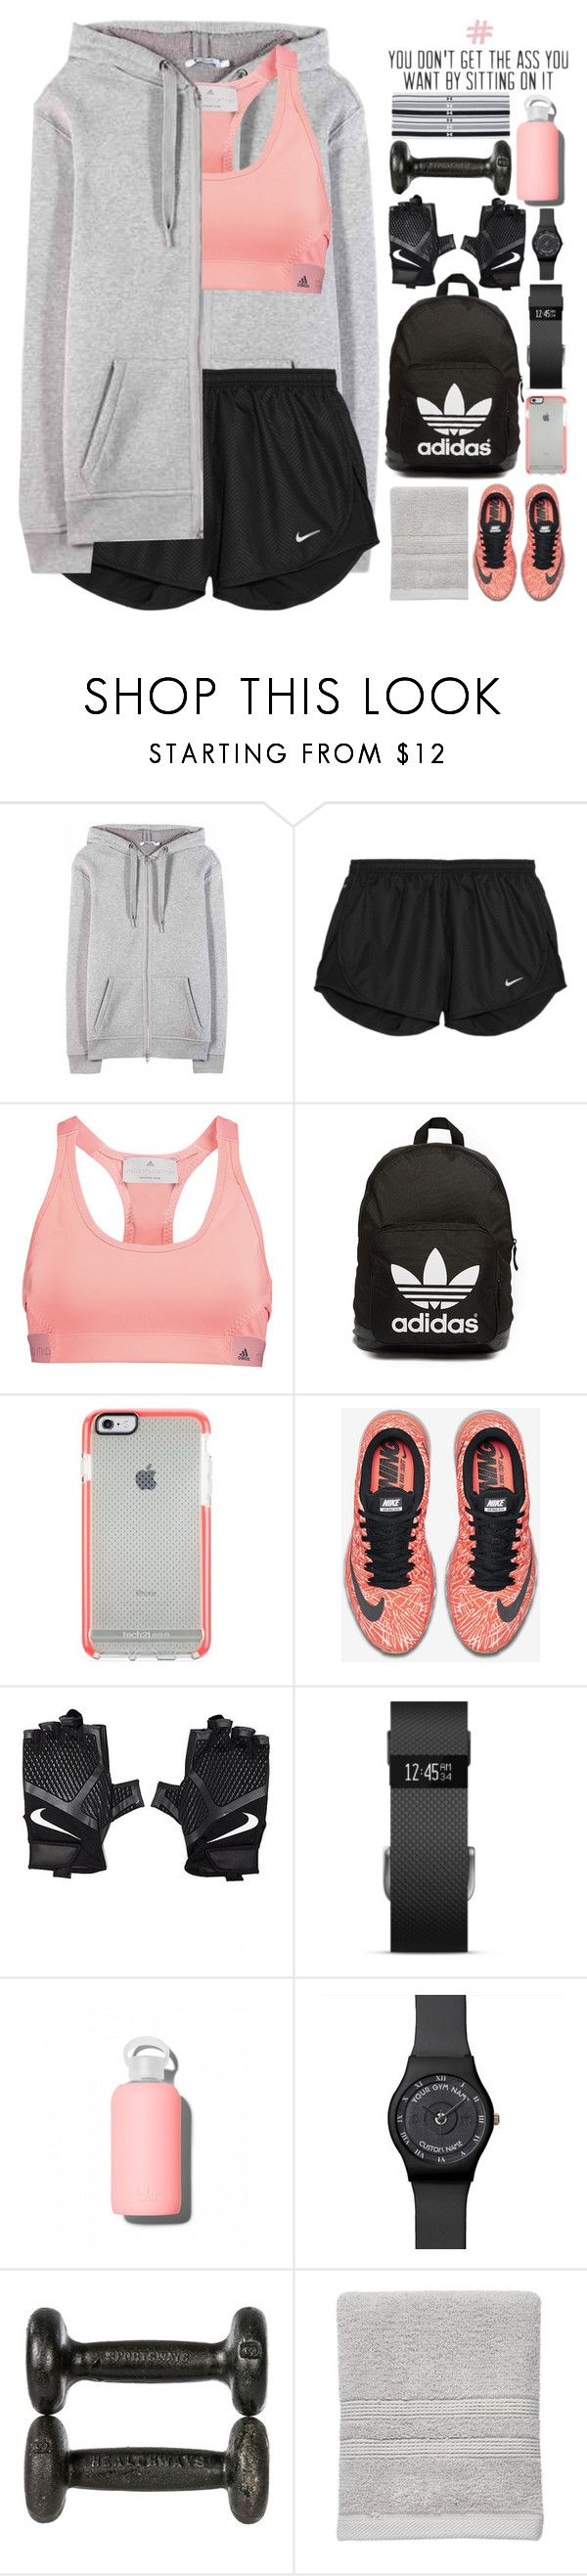 #805 Fitness. by giulls1 ❤ liked on Polyvore featuring T By Alexander Wang, NIKE, adidas, adidas Originals, Fitbit, bkr, Sonoma life   style, Under Armour, womens clothing and women